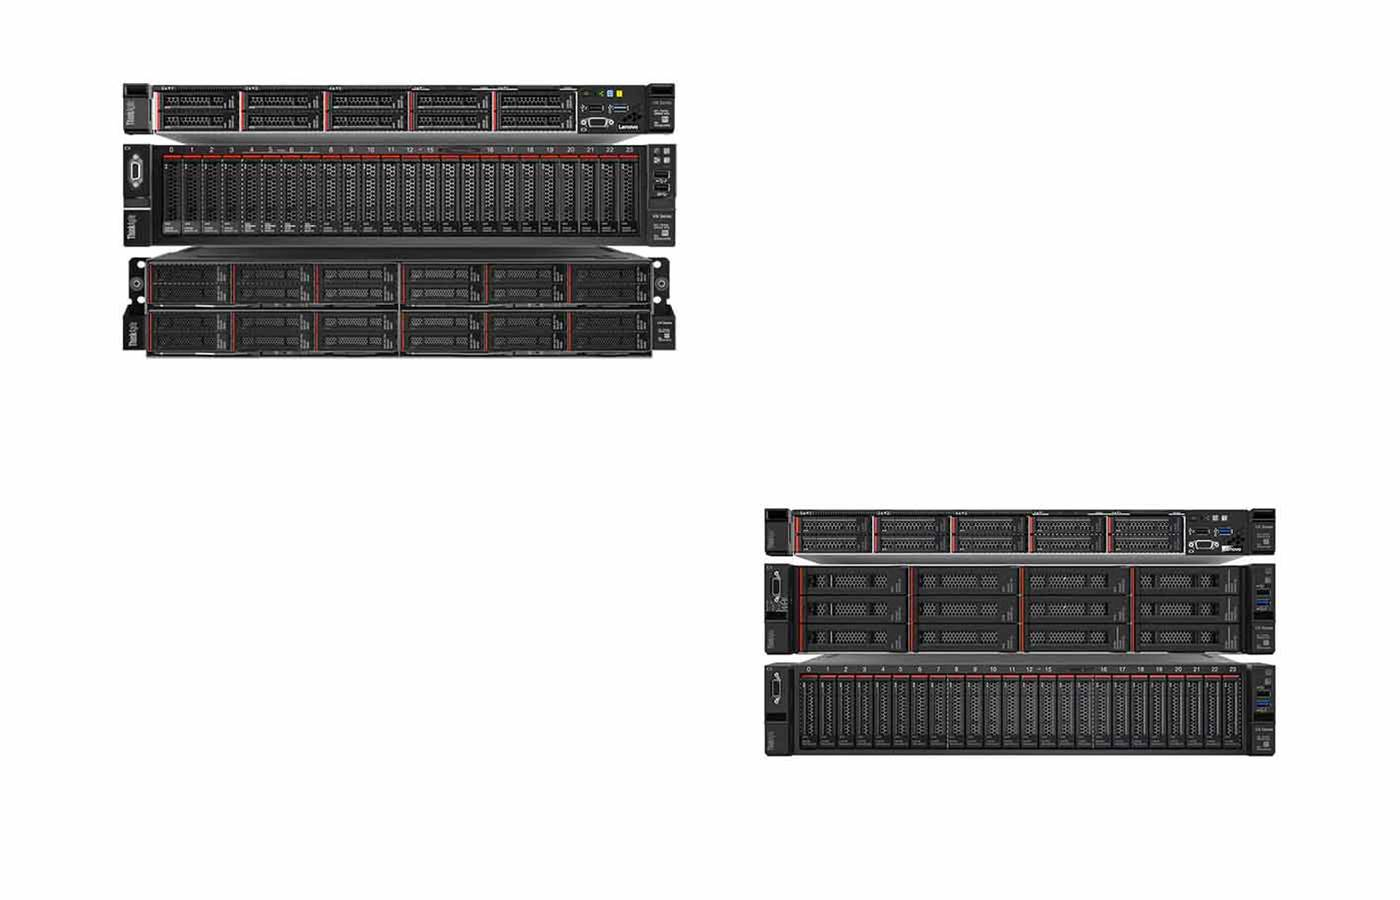 Lenovo launches 'TruScale' servers-as-a-service program